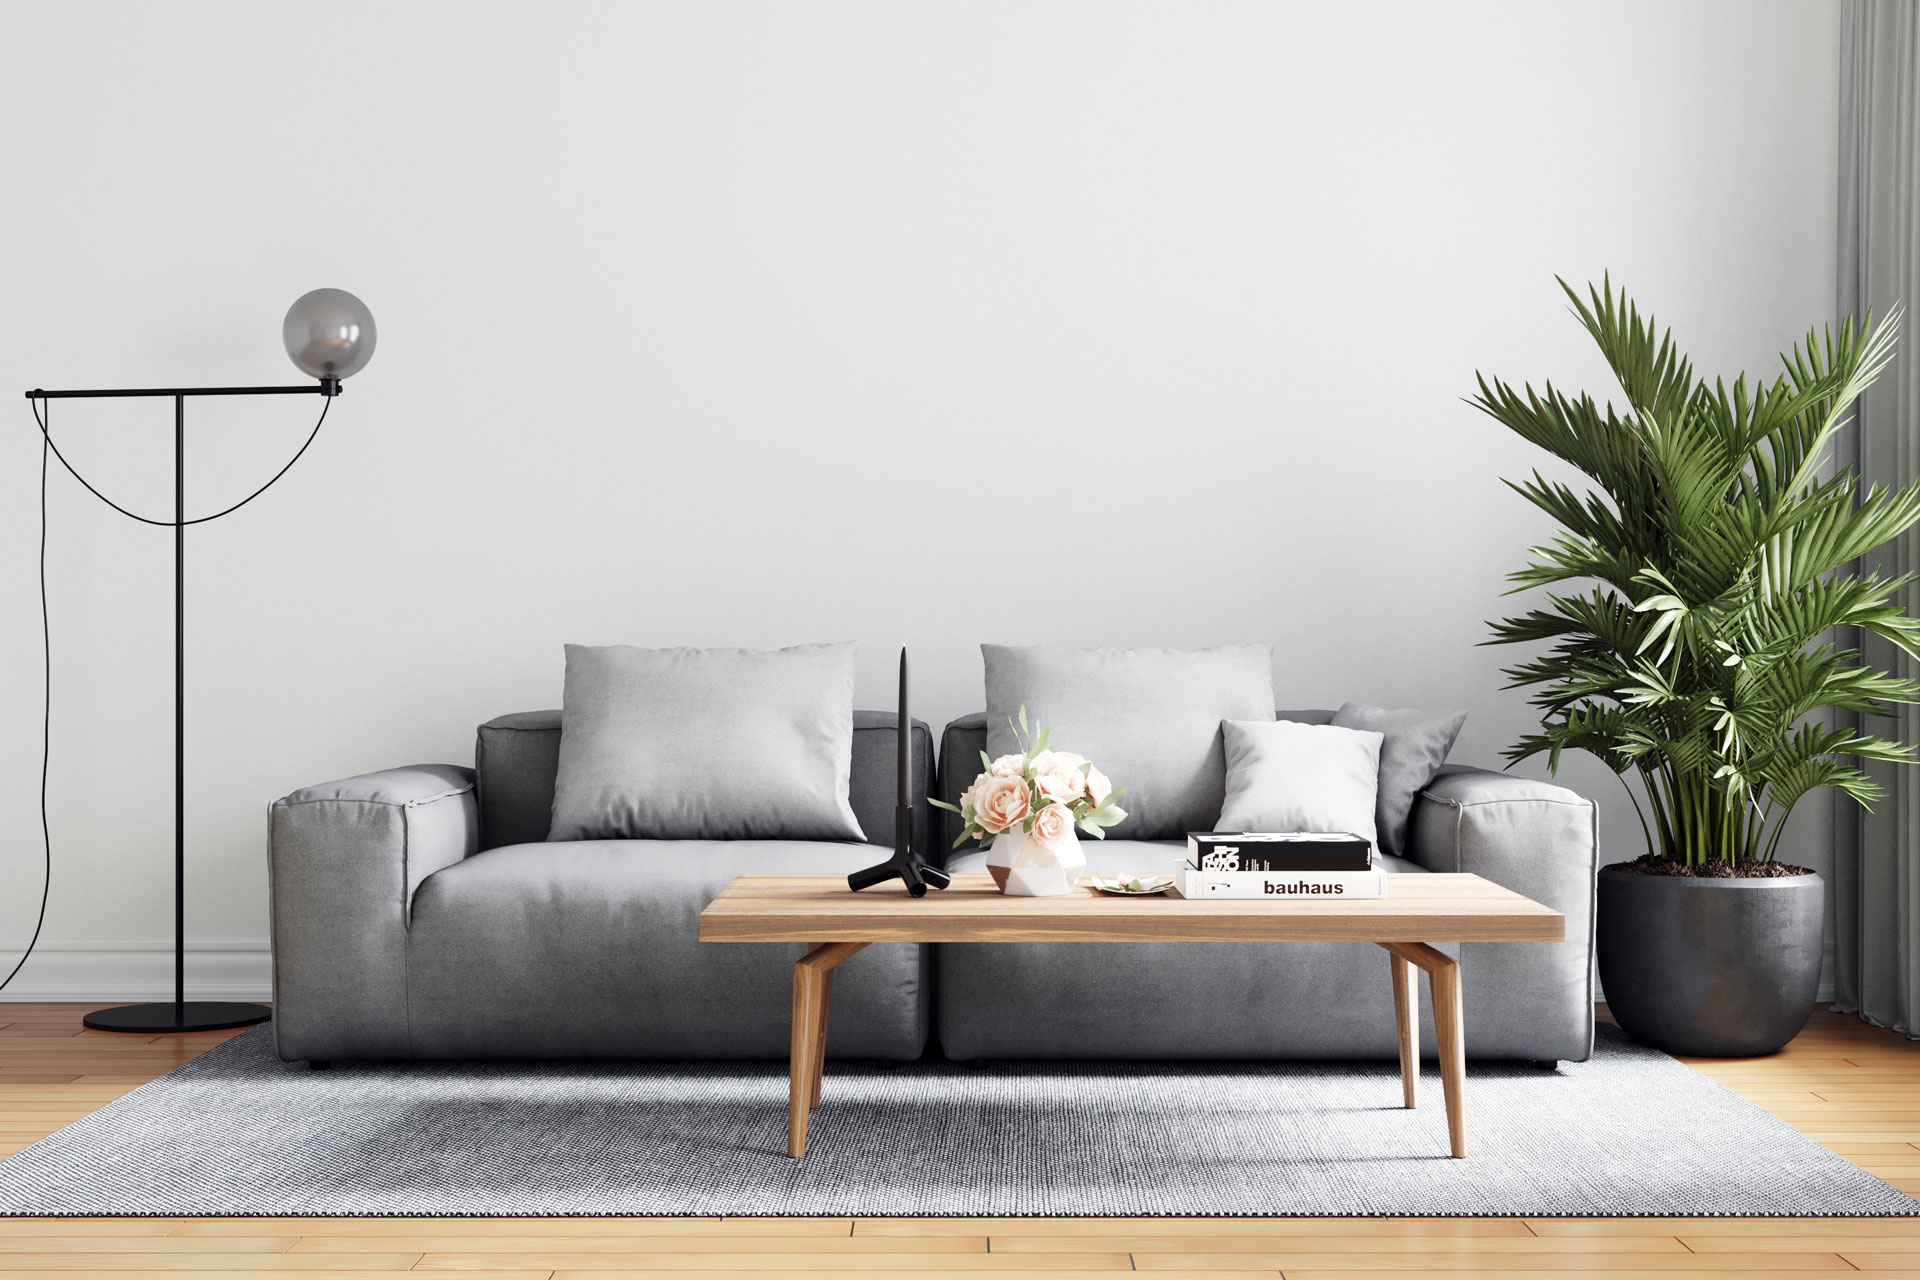 modern interior with grey couch and styling